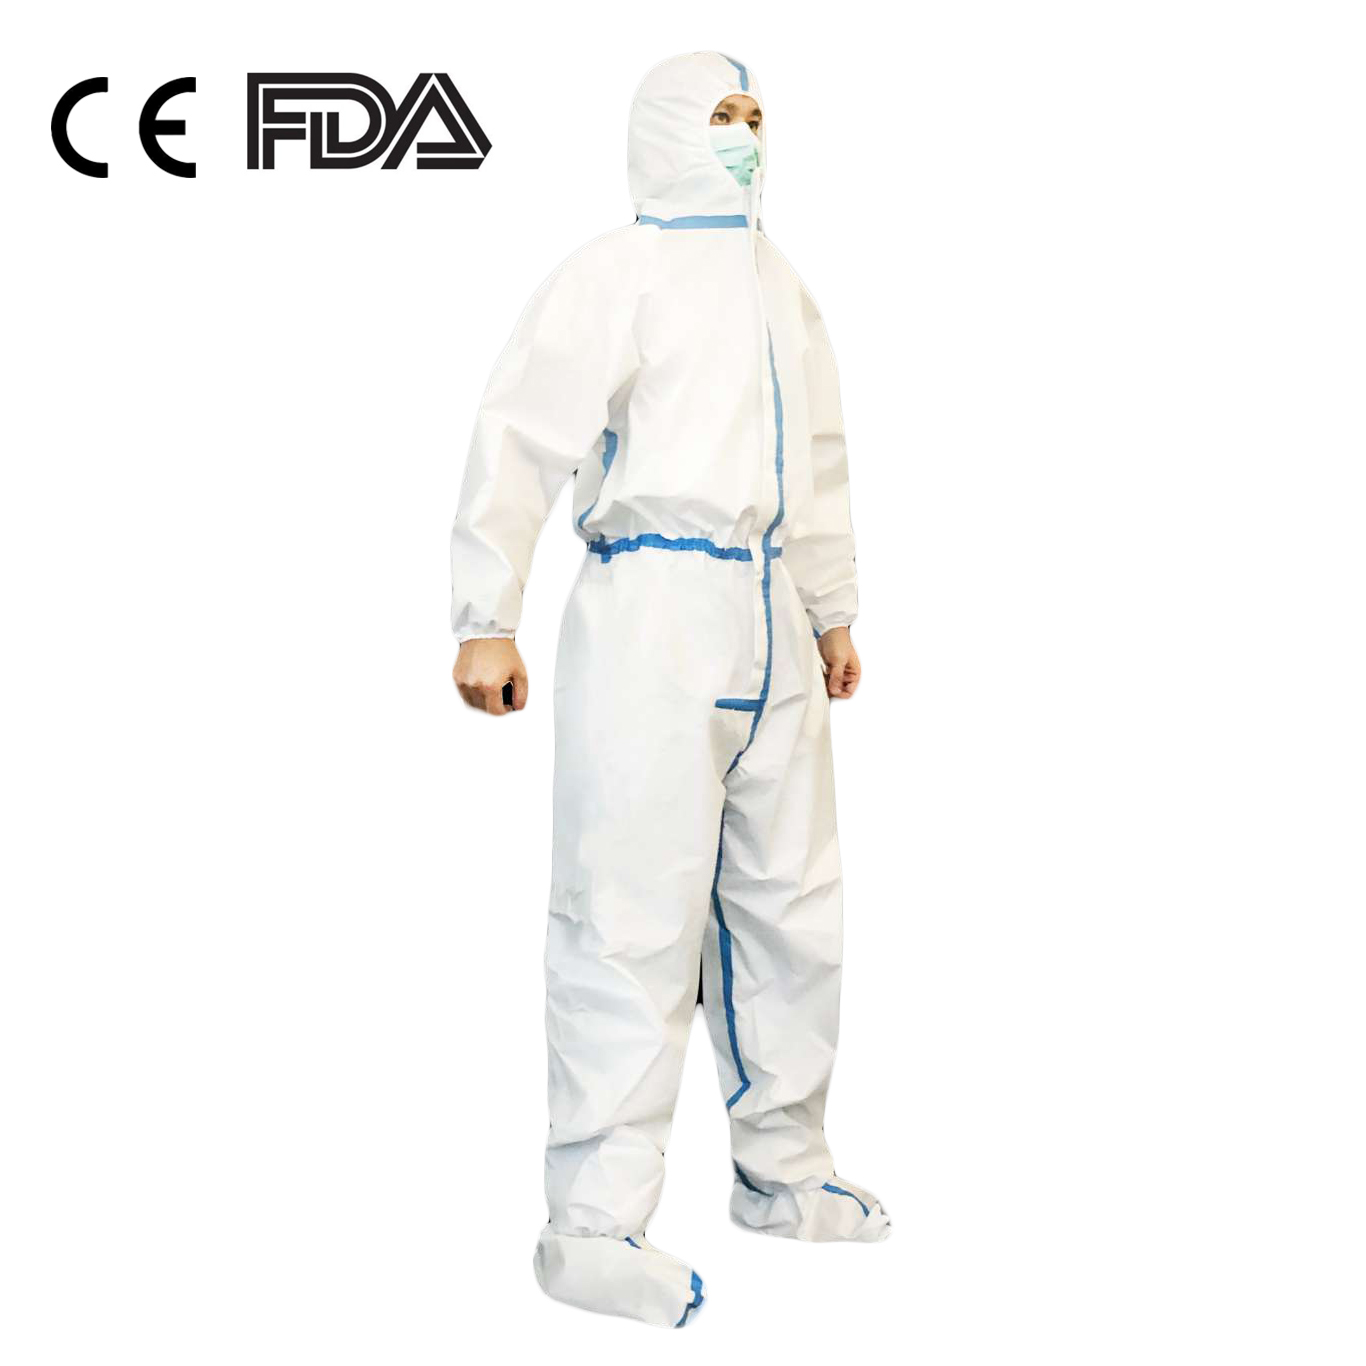 Performance requirements of protective clothing